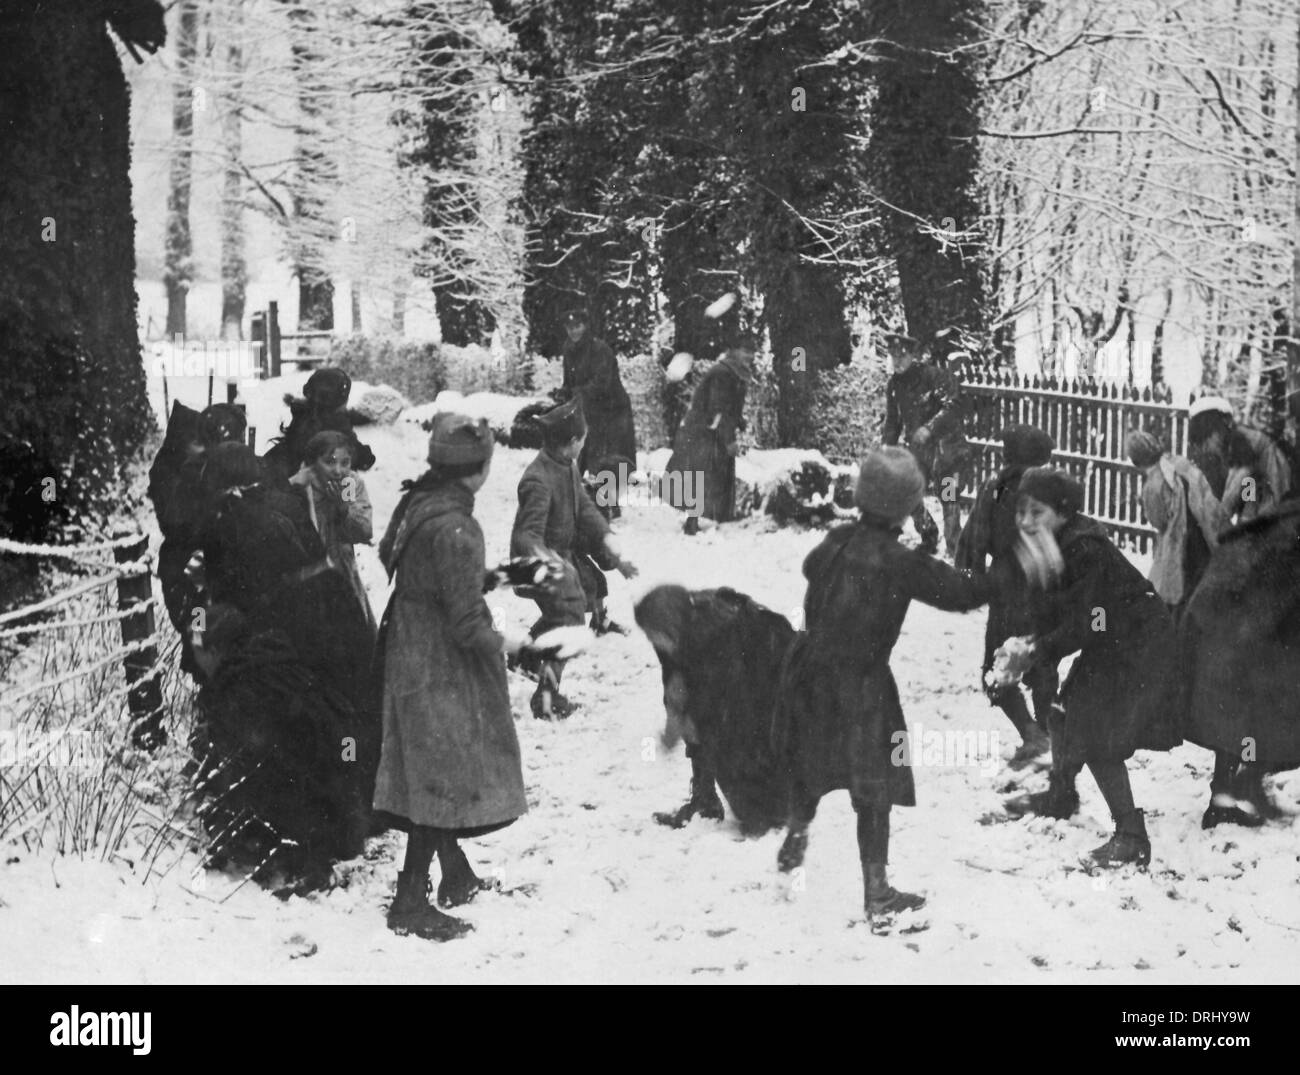 Snowballing on Western Front, France, WW1 - Stock Image